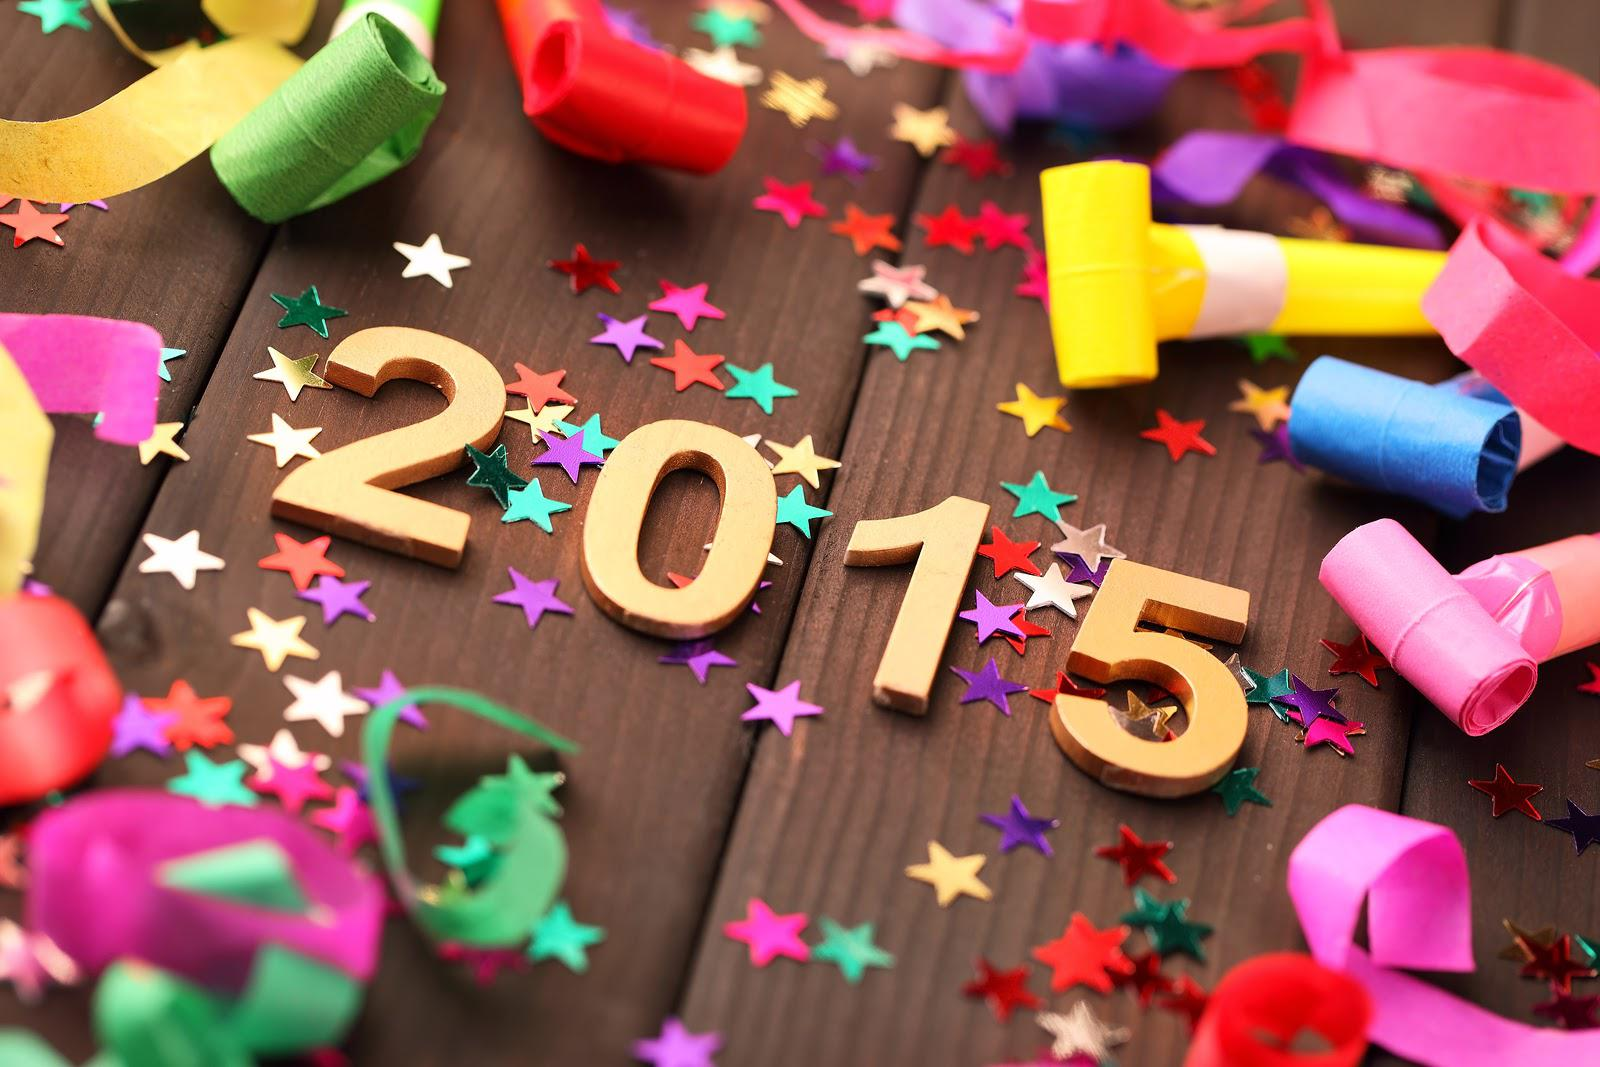 Happy-New-Year-2015-Wallpaper-3D-3 - Christ Church Cathedral School